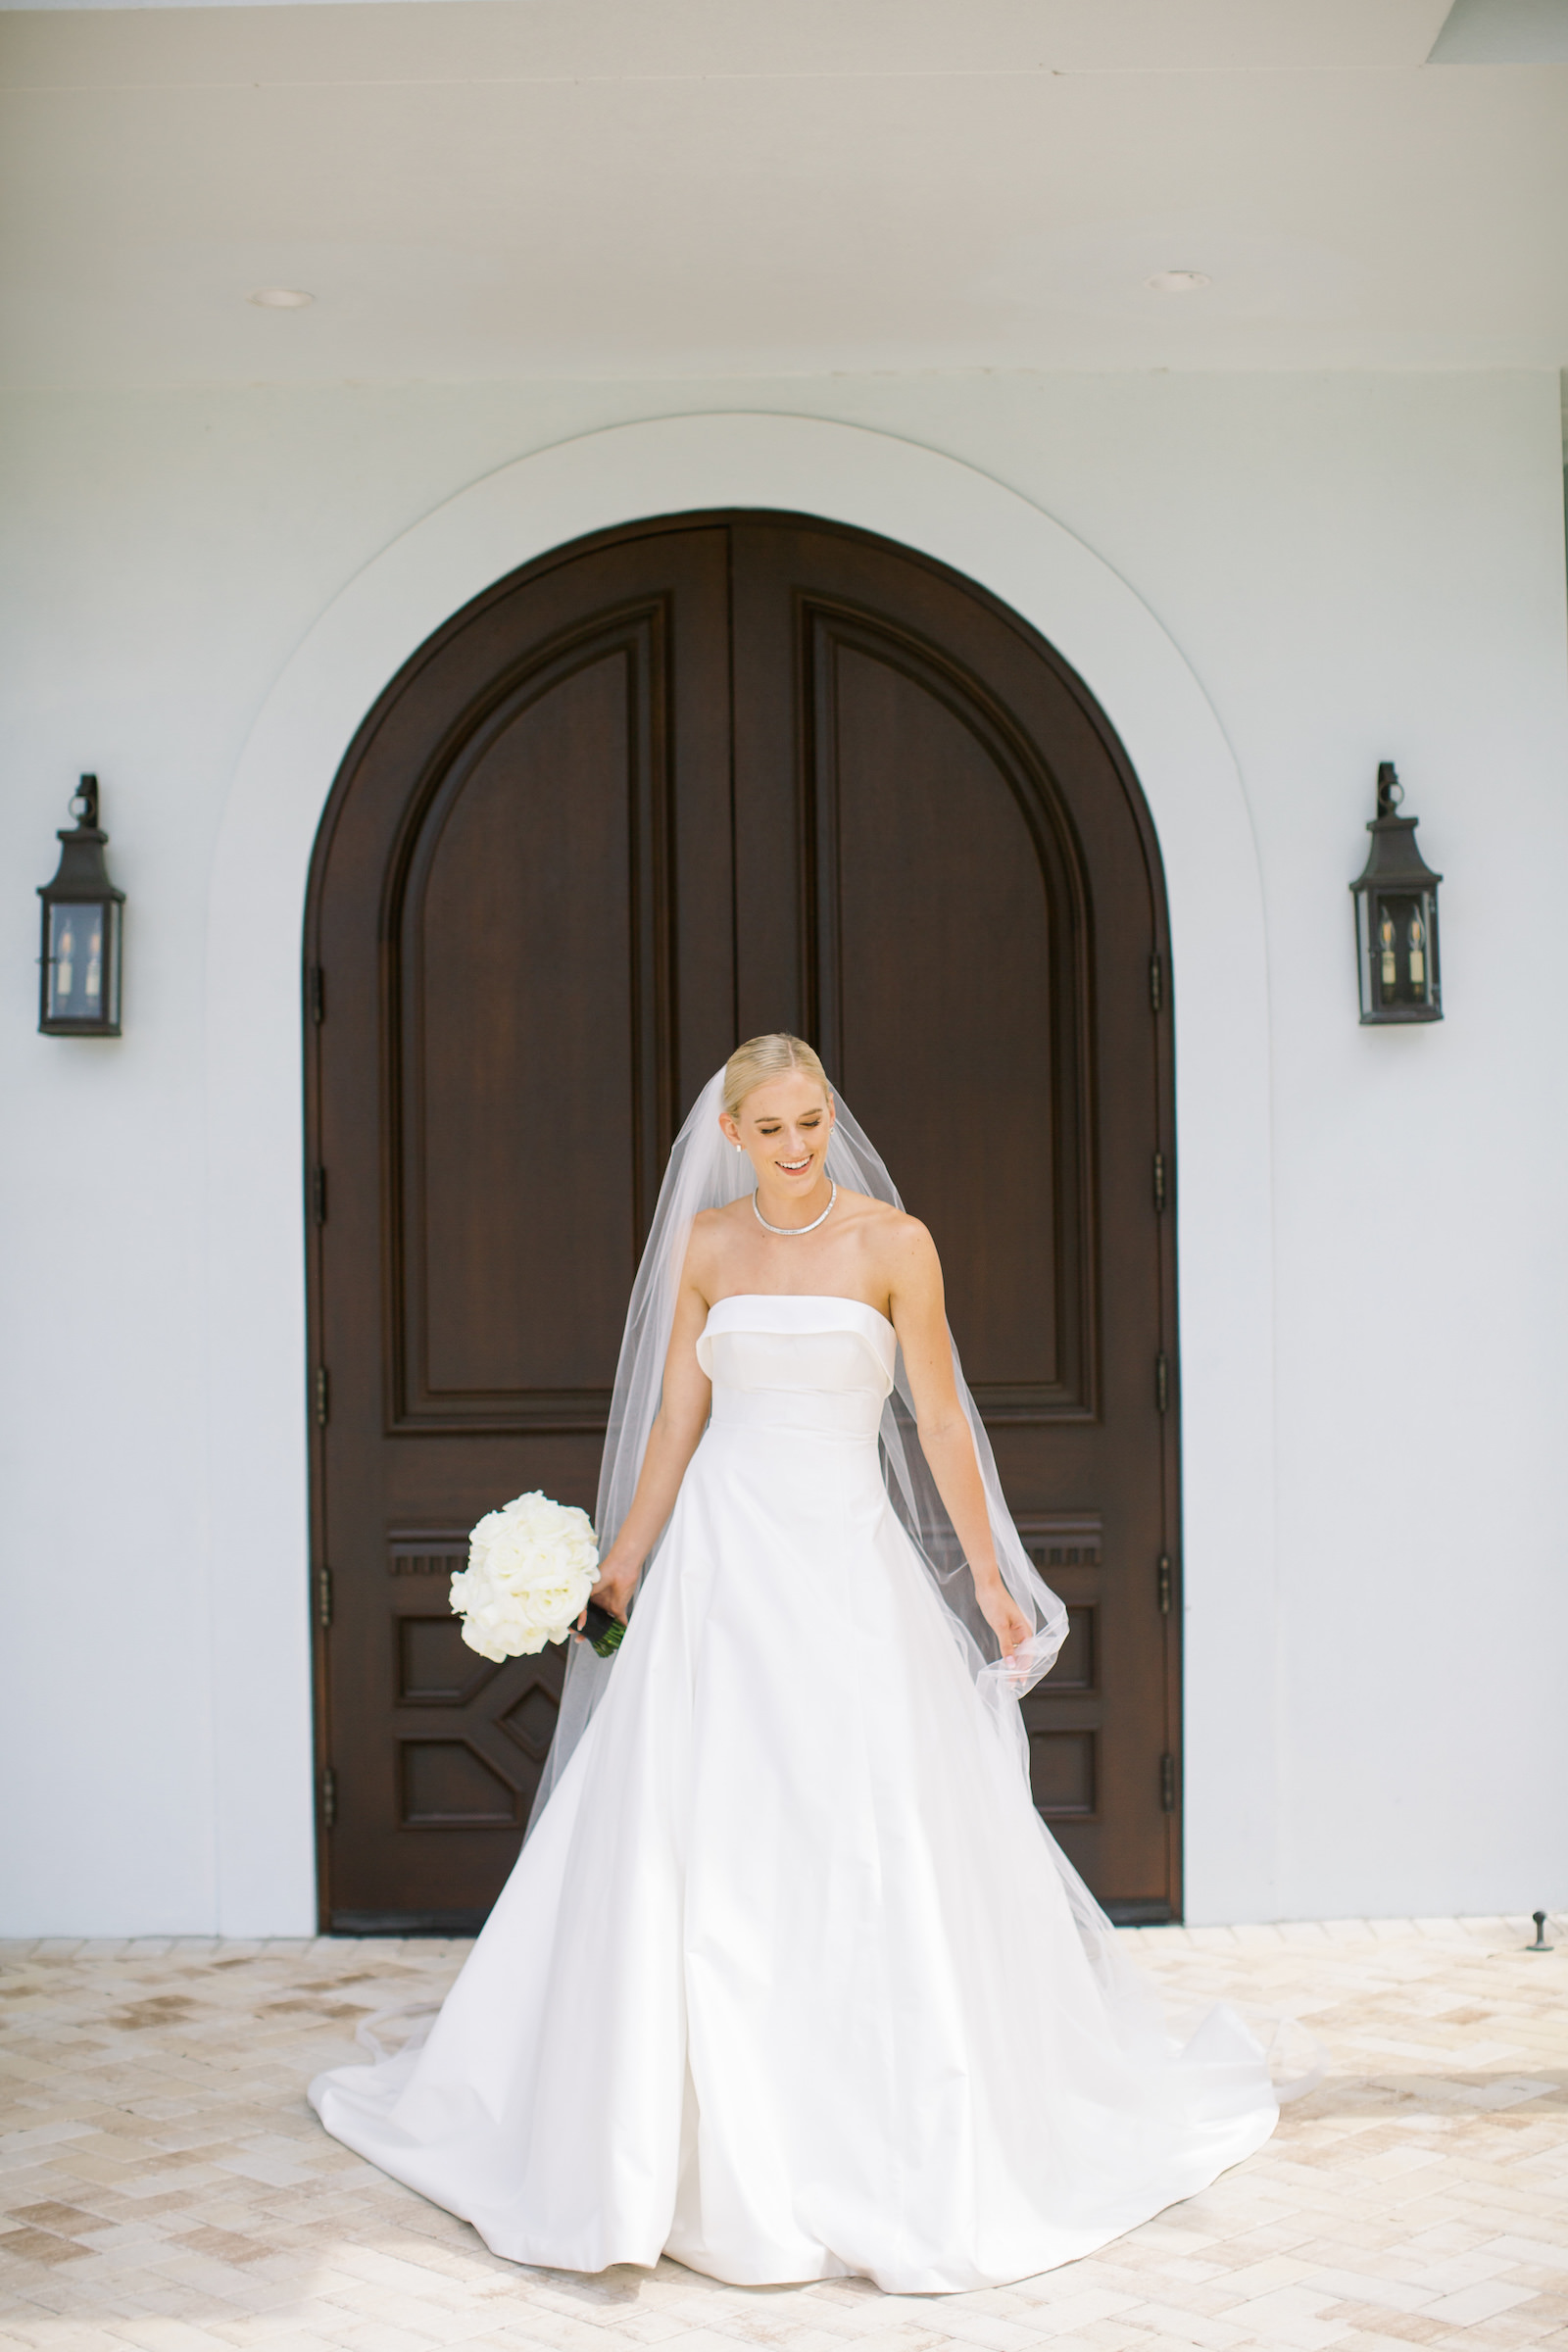 Tampa Bride in Strapless Ballgown Crepe Romona Keveza Wedding Dress Holding Classic White Floral Bouquet | Safety Harbor Wedding Venue Harborside Chapel